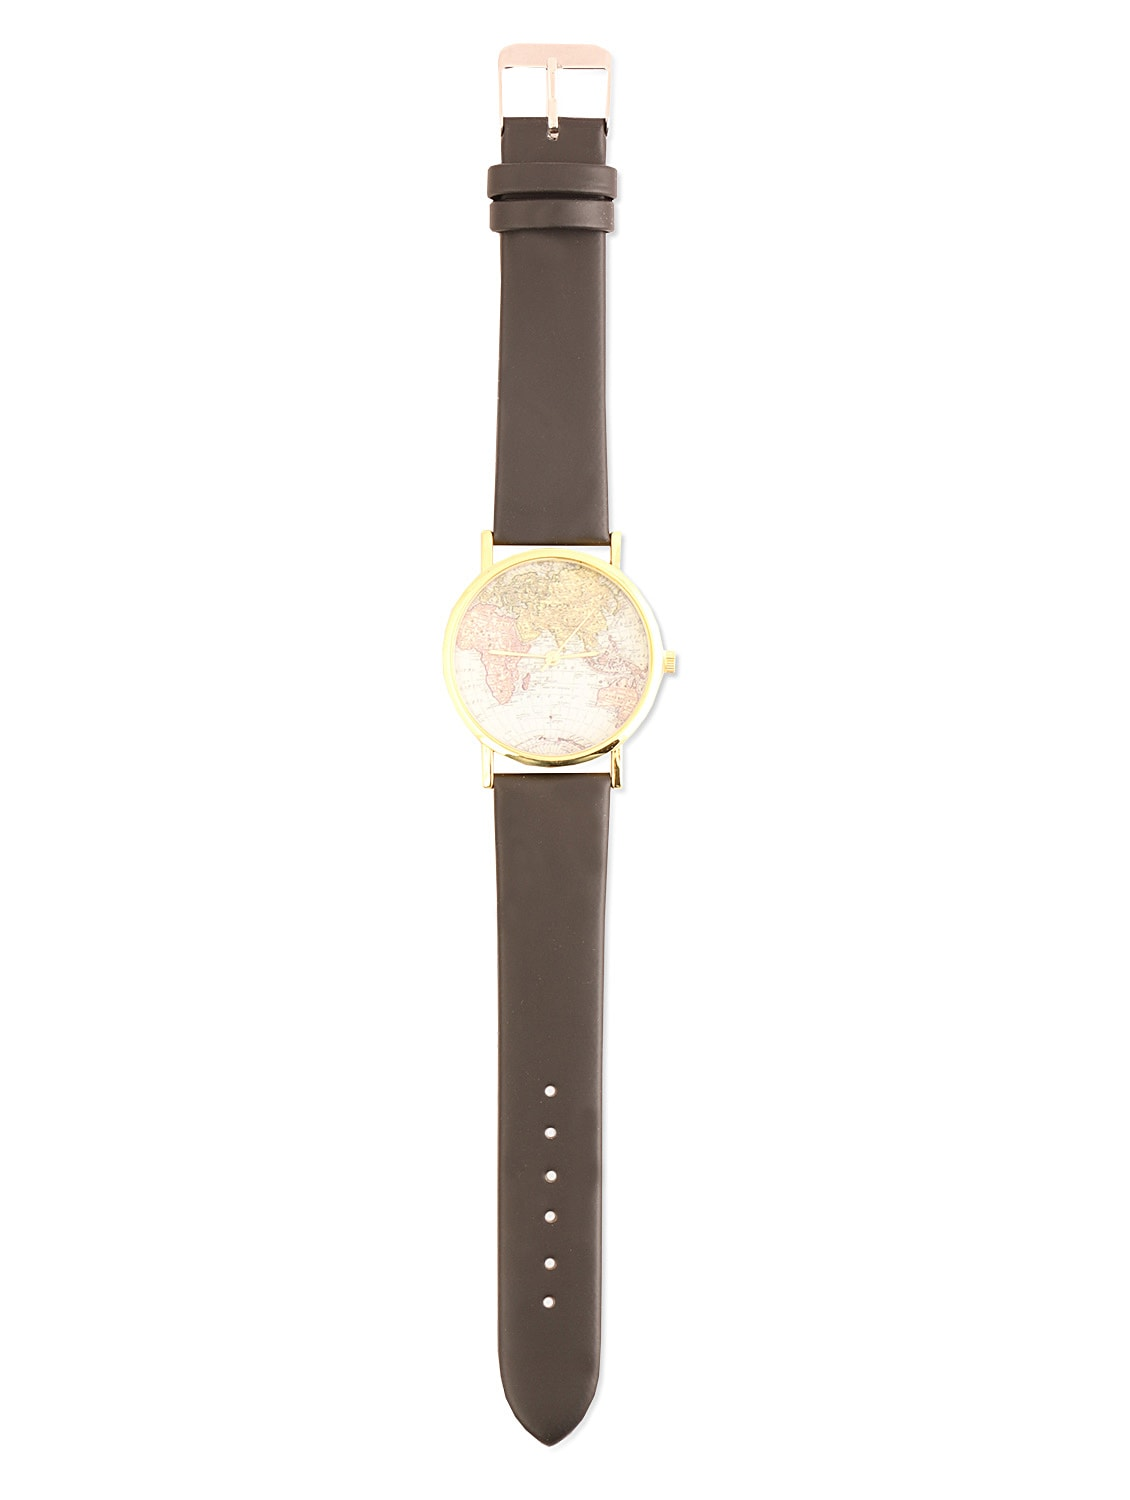 Buy black world map watch by style fiesta online shopping for black world map watch tn1 explore this look hover over image to zoom gumiabroncs Images